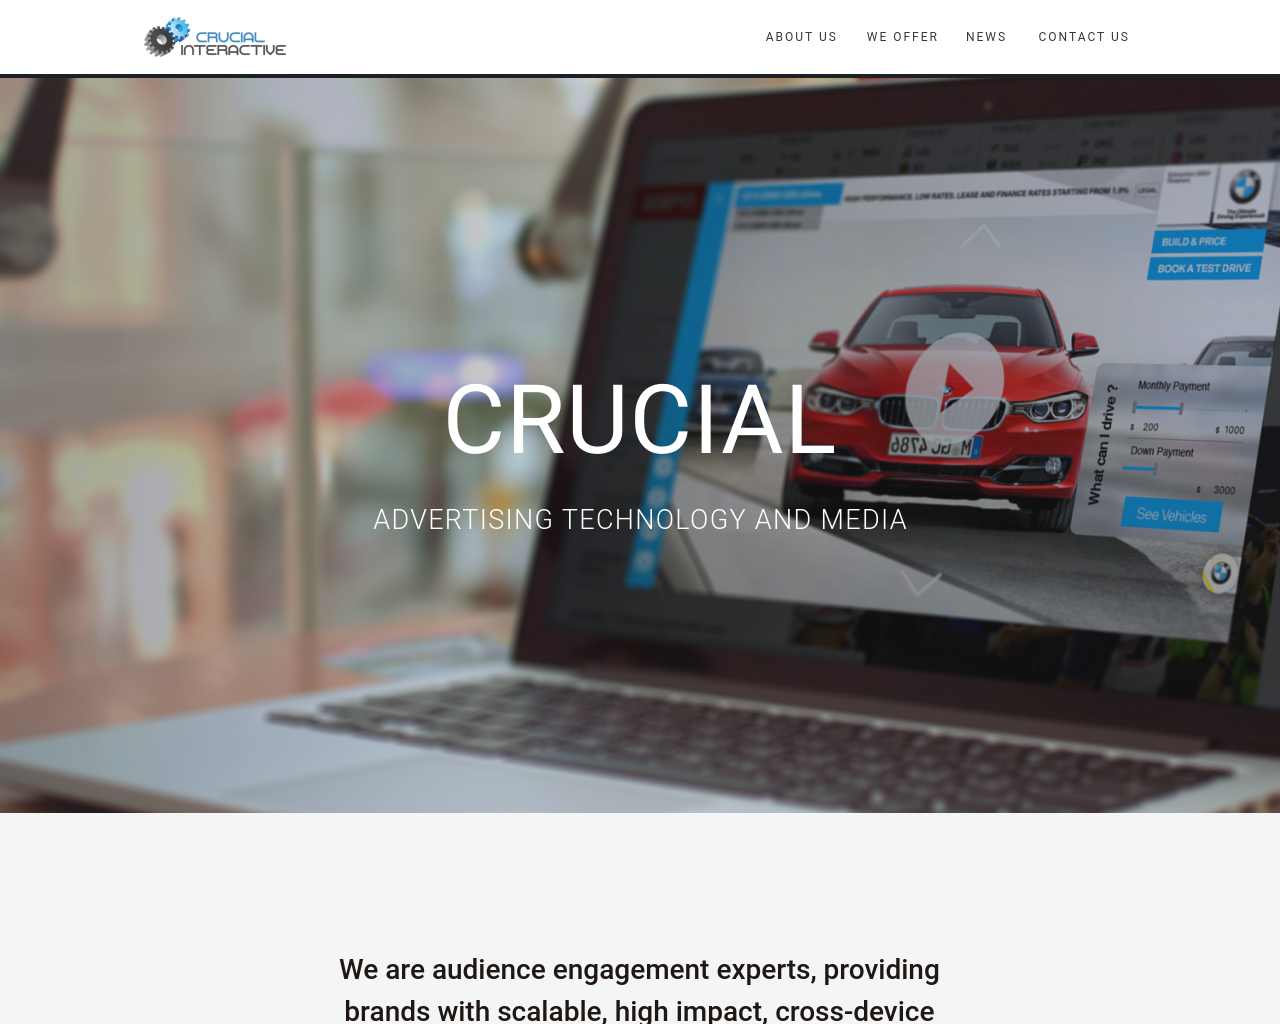 Crucial-Interactive-Advertising-Reviews-Pricing